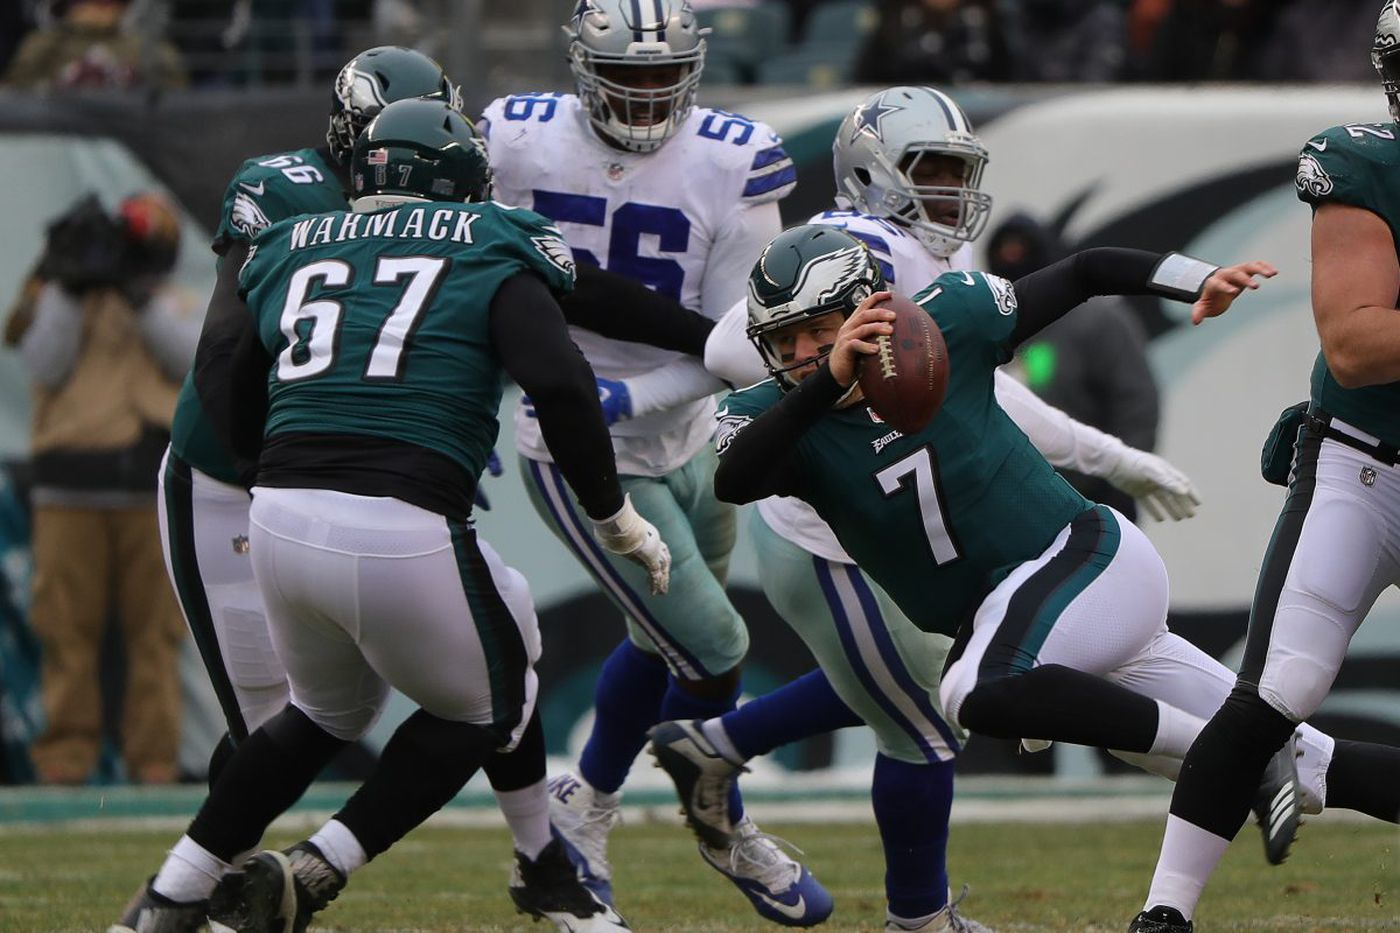 Cowboys 6, Eagles 0 - as it happened